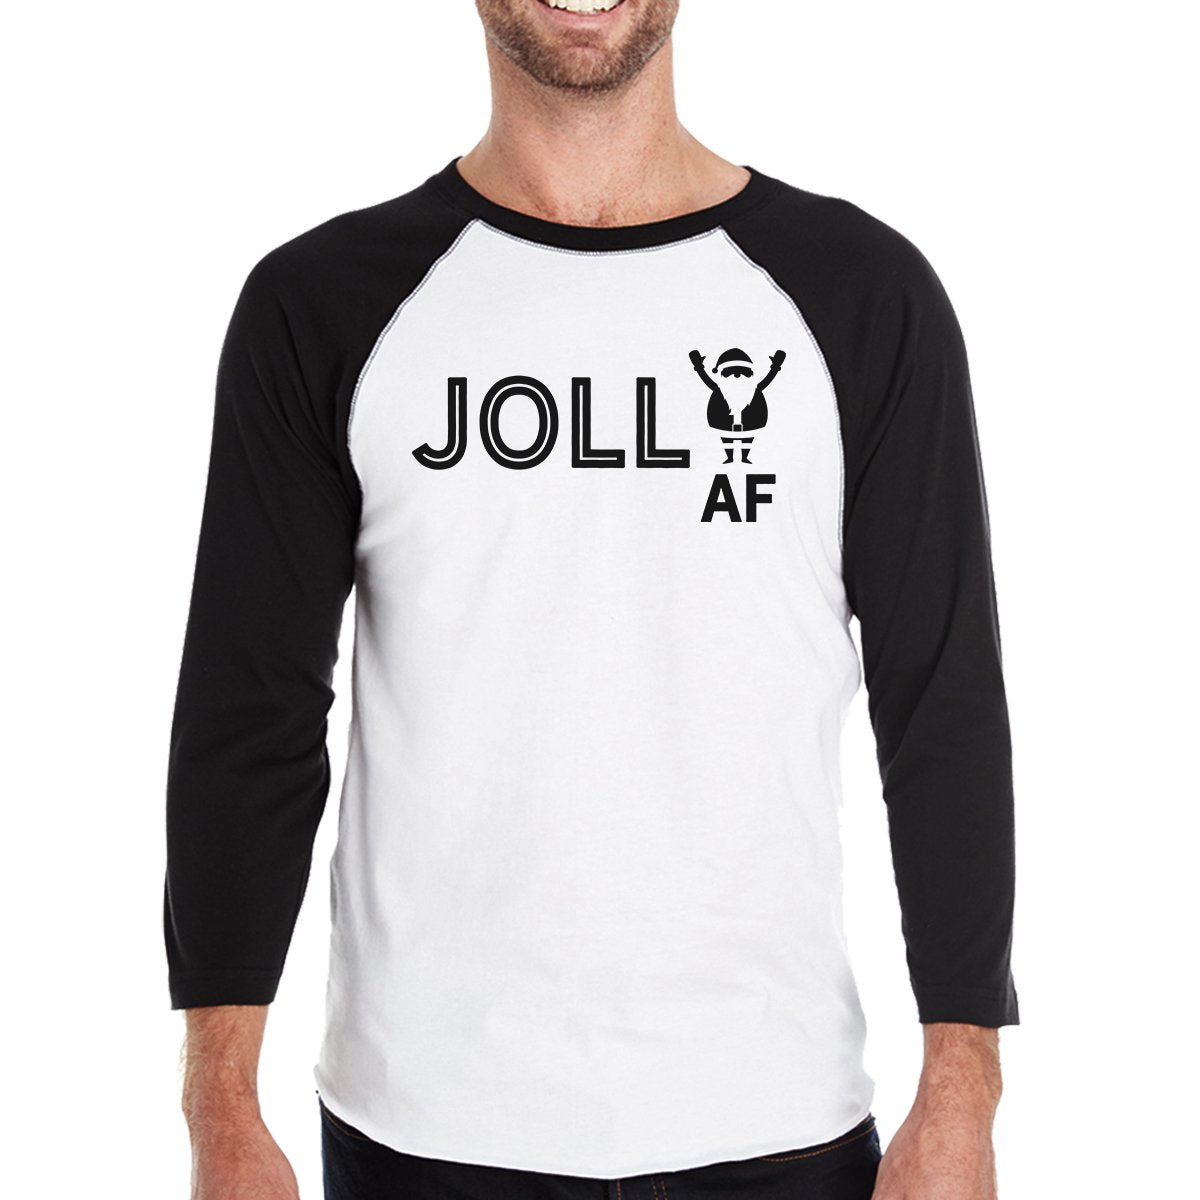 Jolly Af Mens Black And White Baseball Shirt